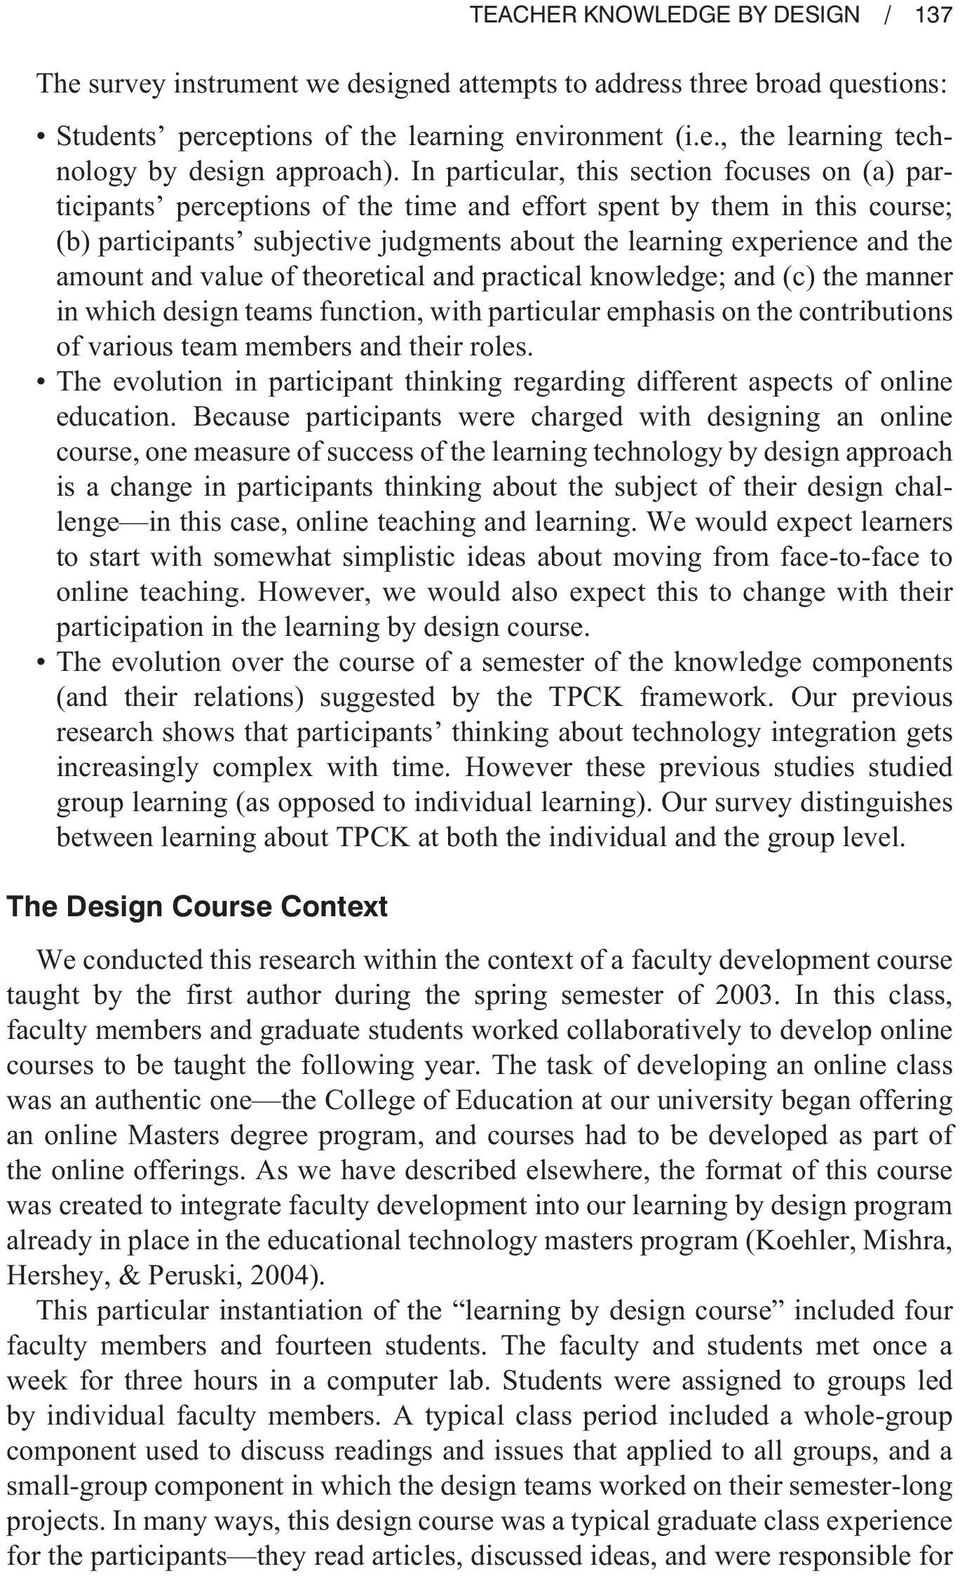 amount and value of theoretical and practical knowledge; and (c) the manner in which design teams function, with particular emphasis on the contributions of various team members and their roles.